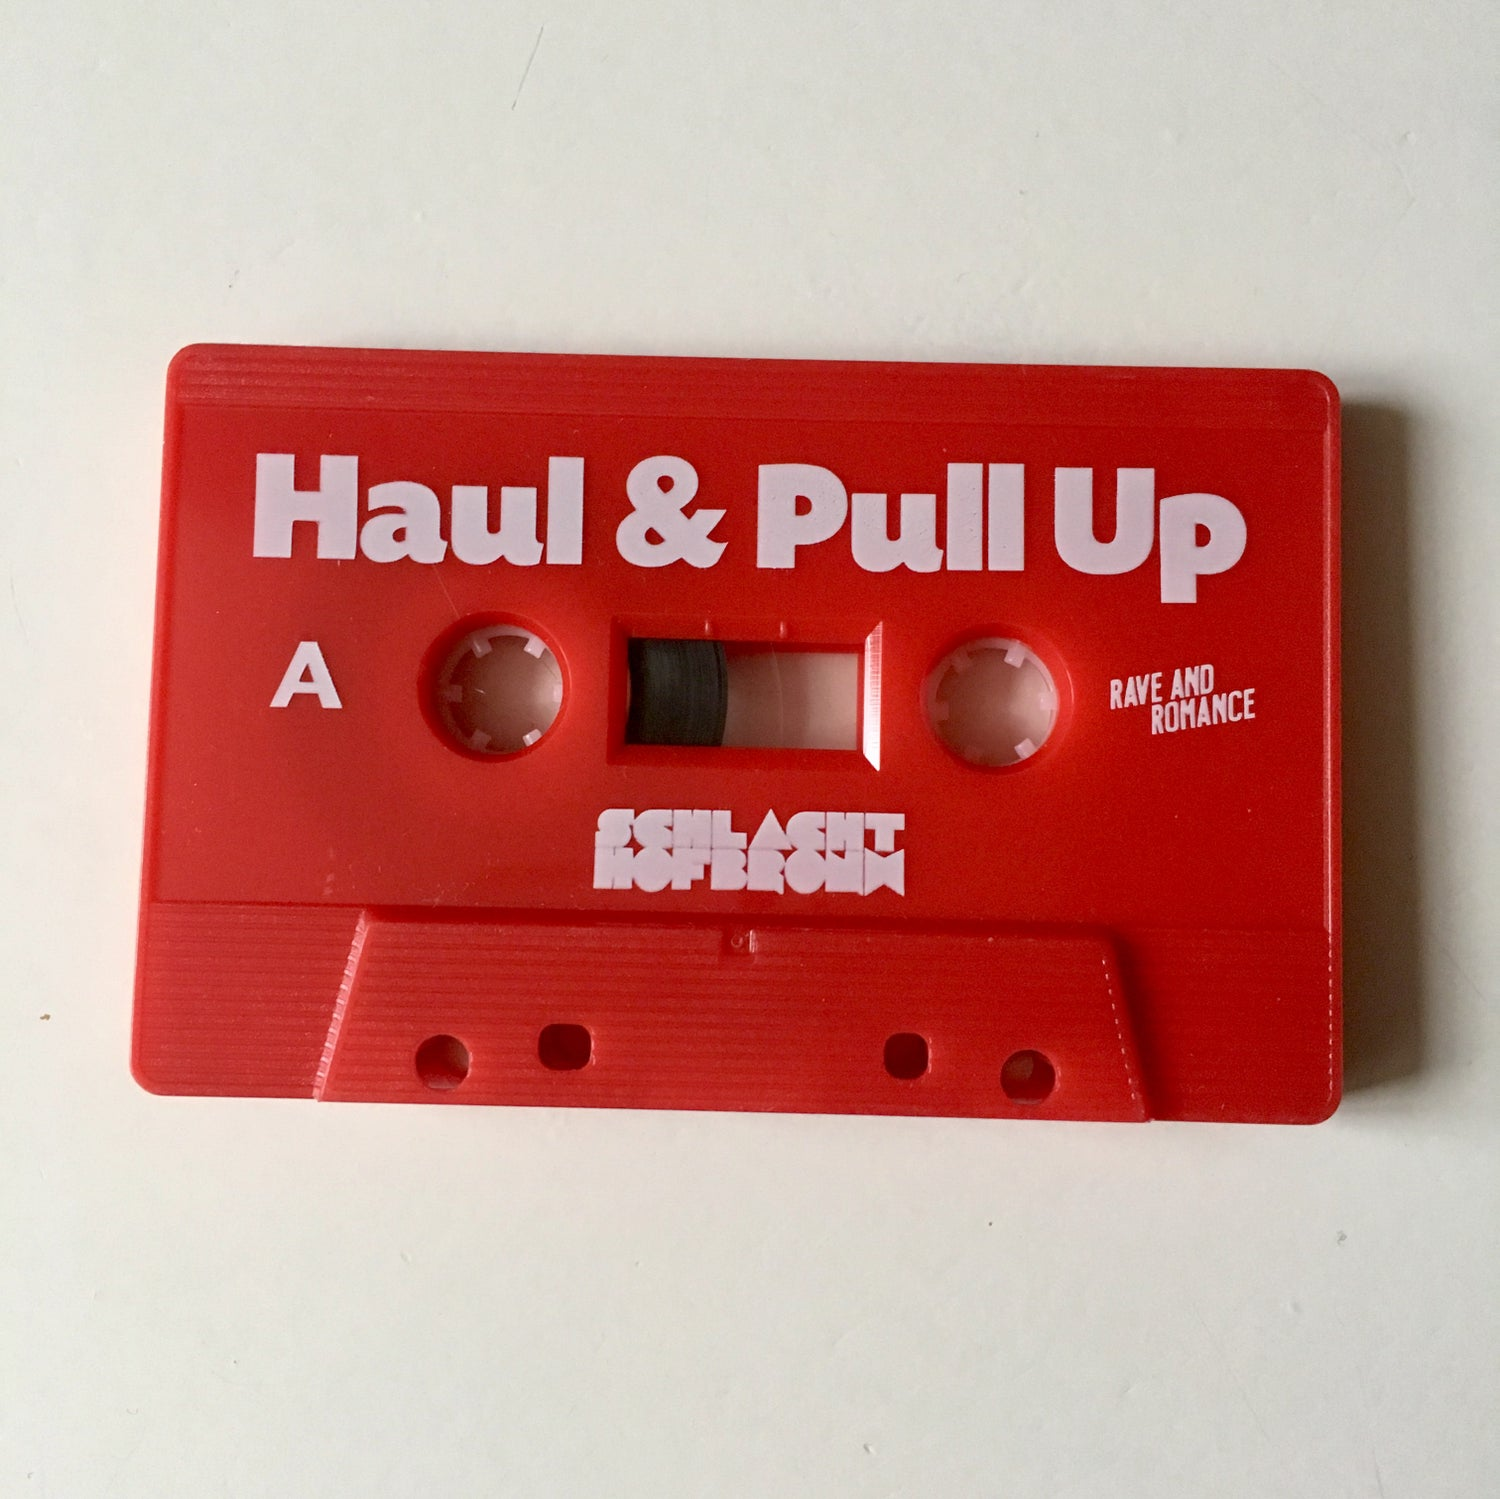 Image of Haul & Pull Up Cassette Tape